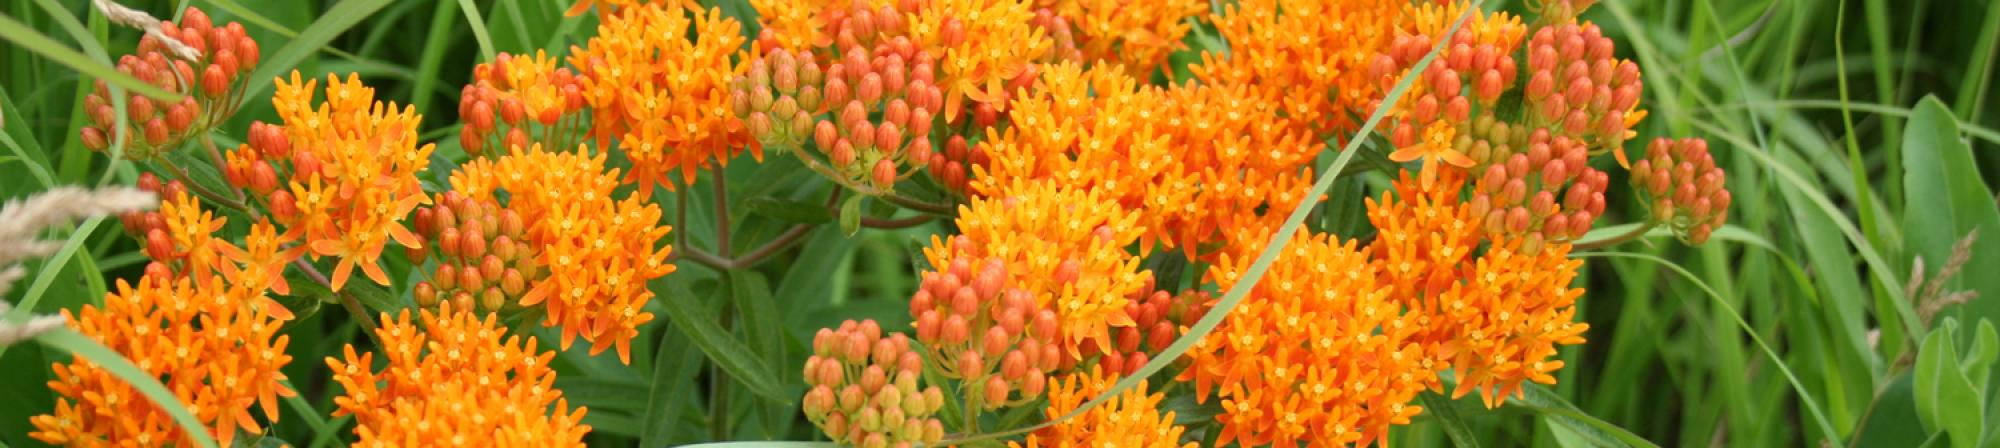 Close up of butterfly weed (tiny orange flowers and flower heads on green foliage)